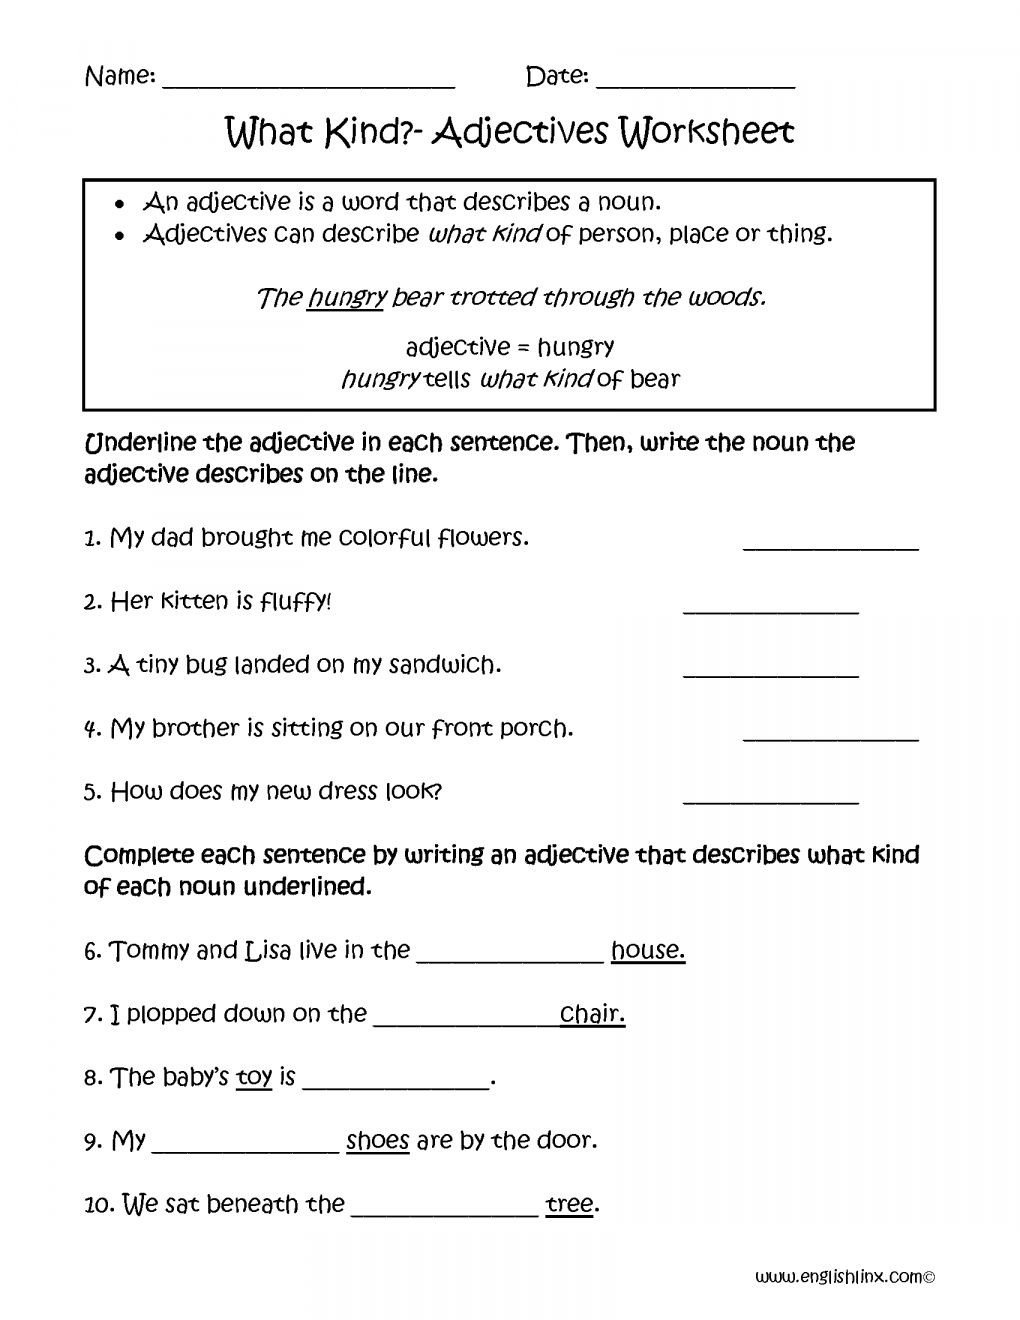 Adjectives Worksheet 2nd Grade Adjective Worksheet 2nd Grade Free and Adjectives Worksheets